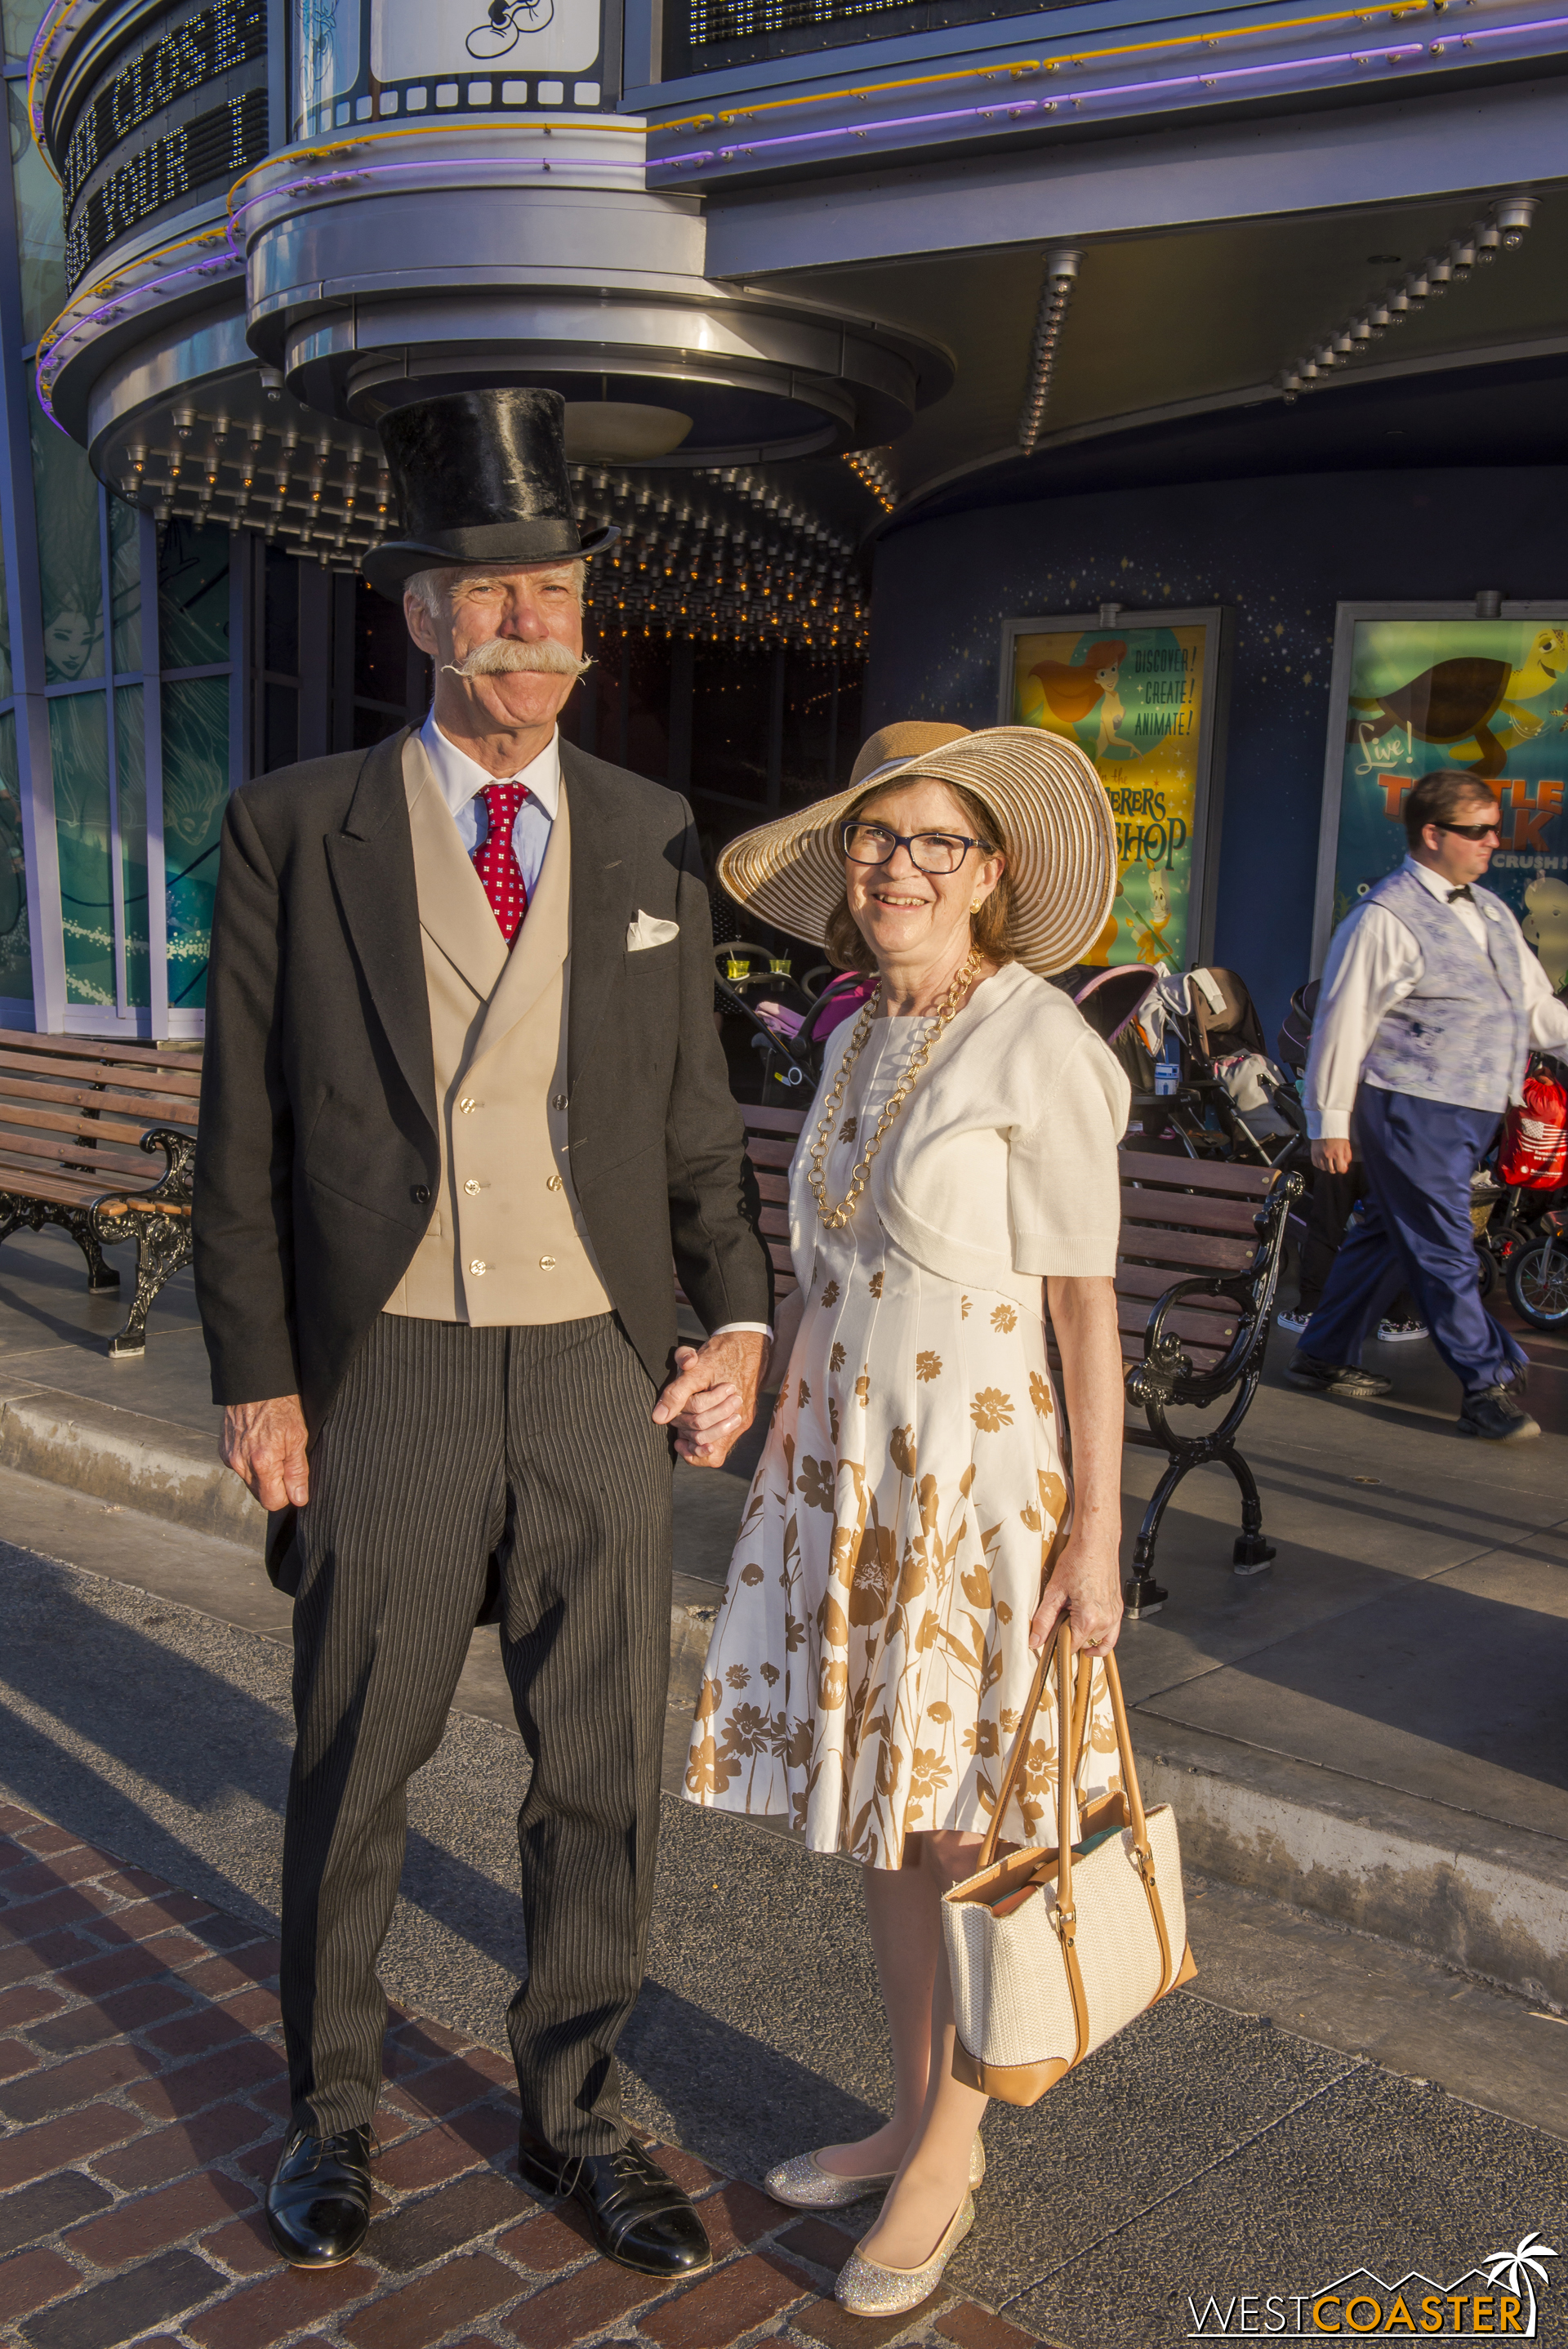 It's fantastic to see that Dapper Day transcends any artificial age limits and is enjoyed by guests young and young at heart.